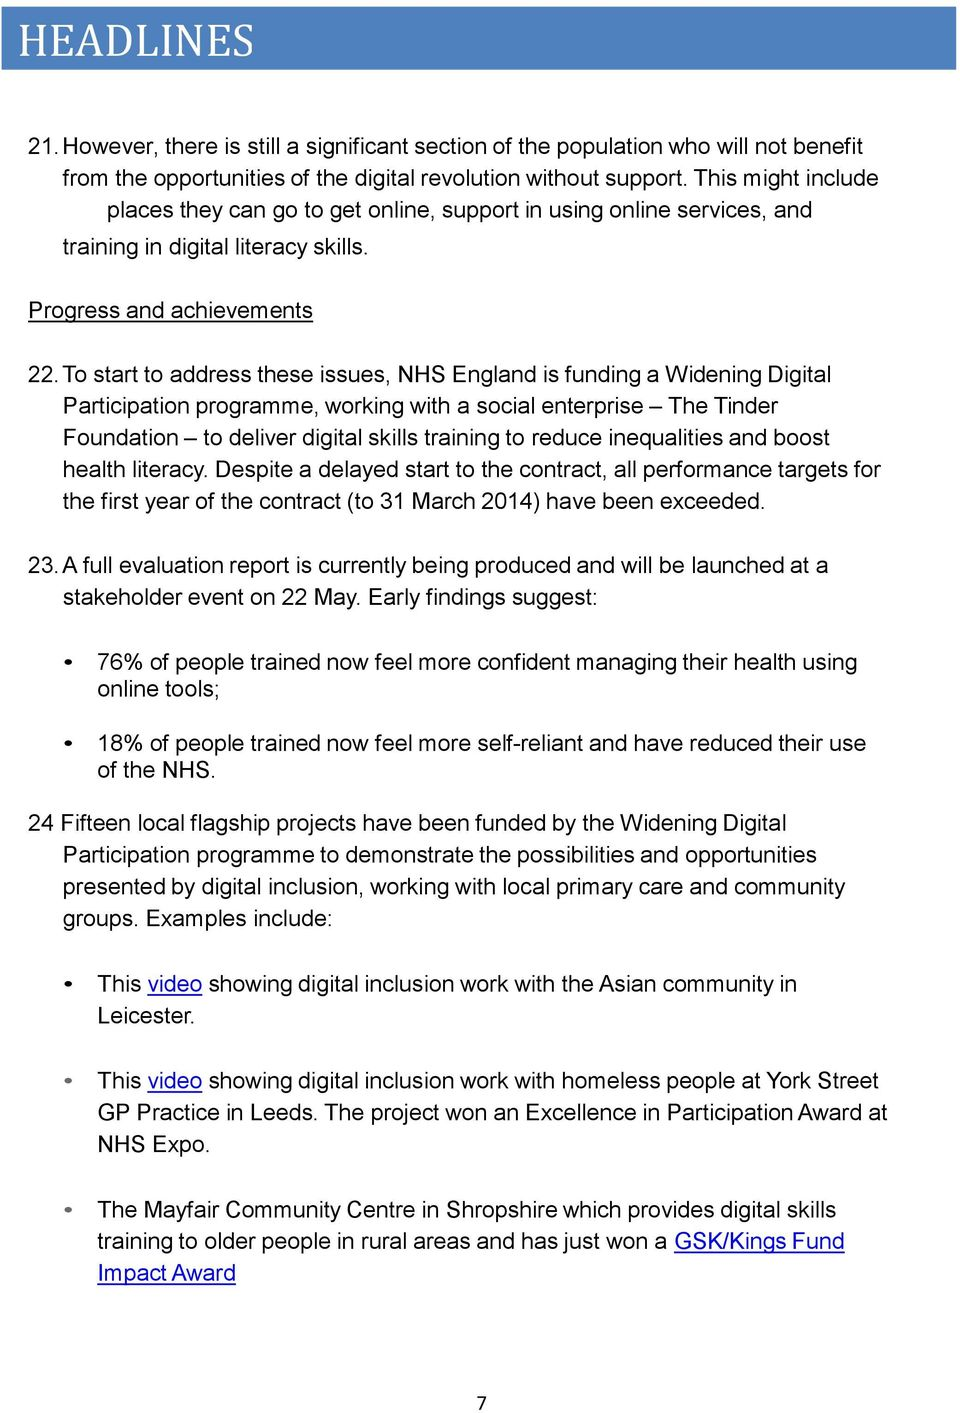 To start to address these issues, NHS England is funding a Widening Digital Participation programme, working with a social enterprise The Tinder Foundation to deliver digital skills training to